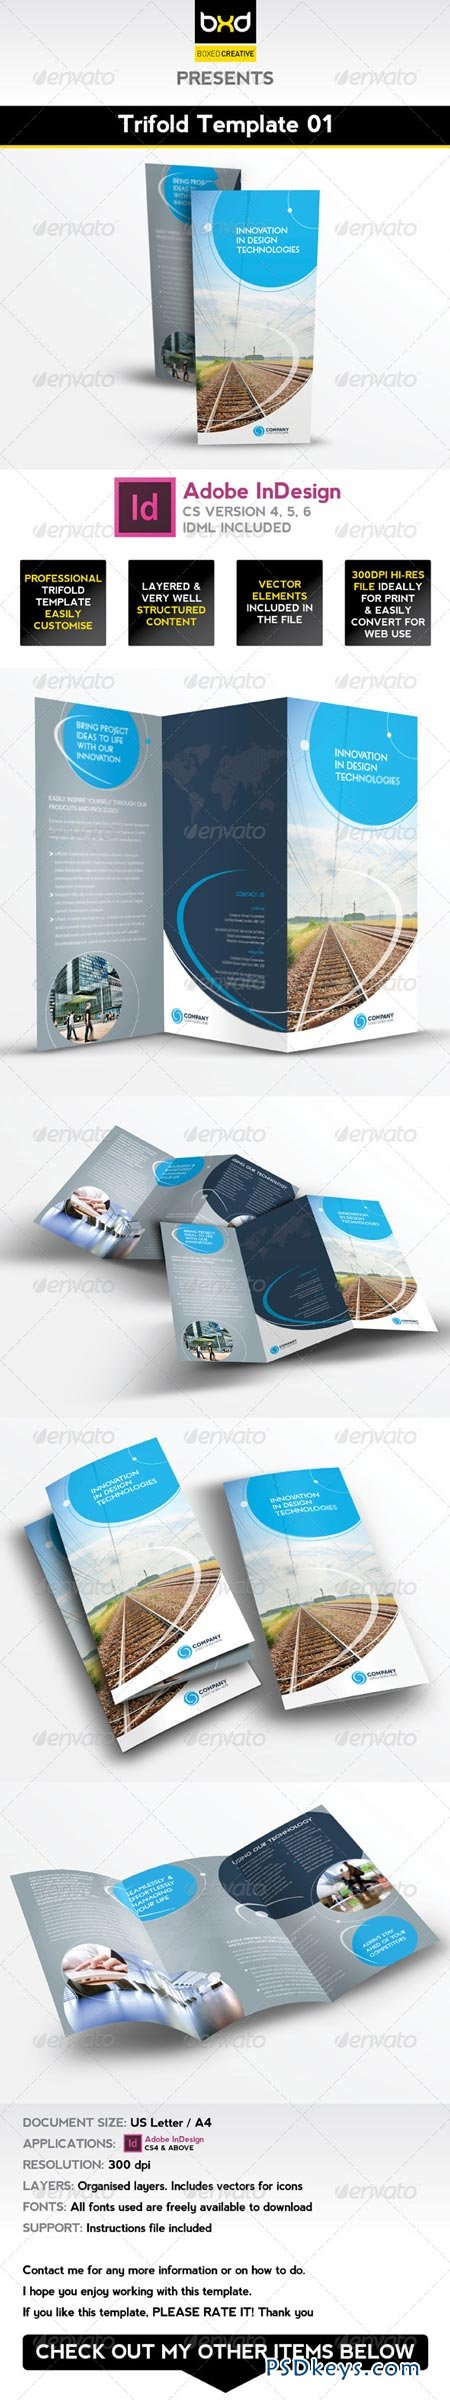 Trifold Brochure Template InDesign Layout Free - Free indesign tri fold brochure templates